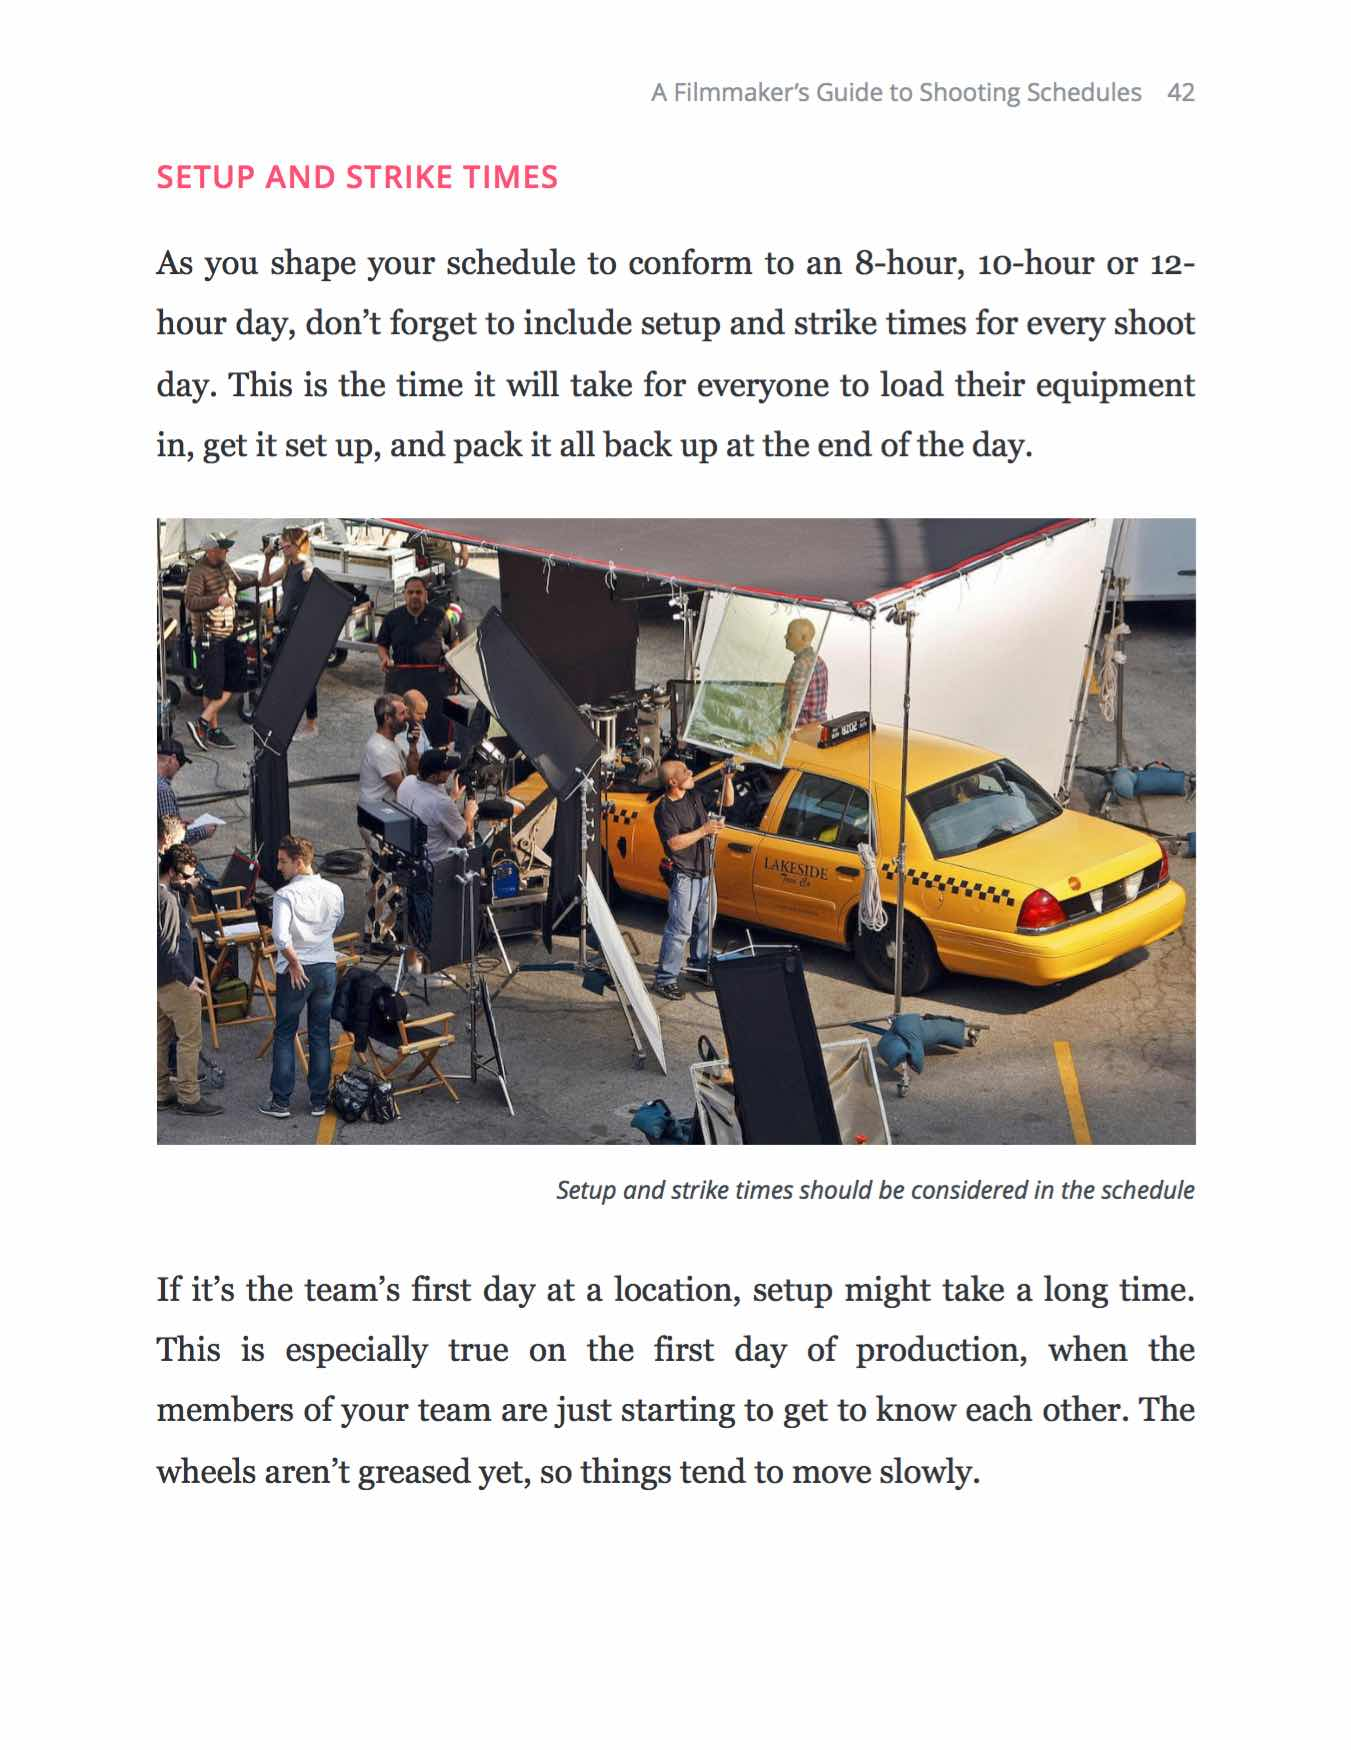 A Filmmakers Guide to Shooting Schedules - Page-42 Free Ebook - StudioBinder